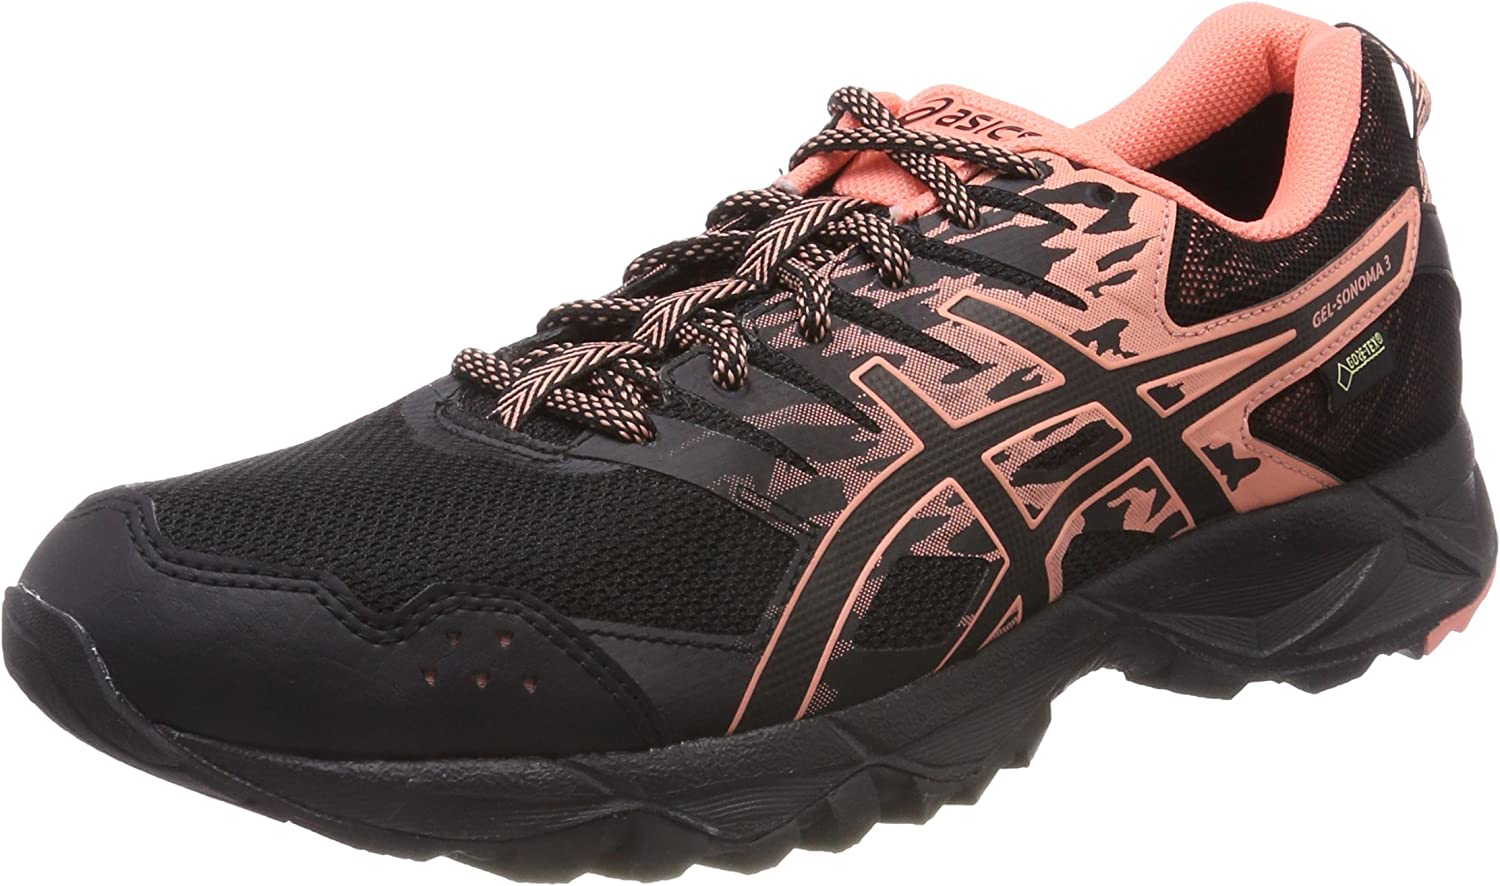 ASICS Gel Sonoma 3 Womens Gore-Tex Running Shoes Trainers